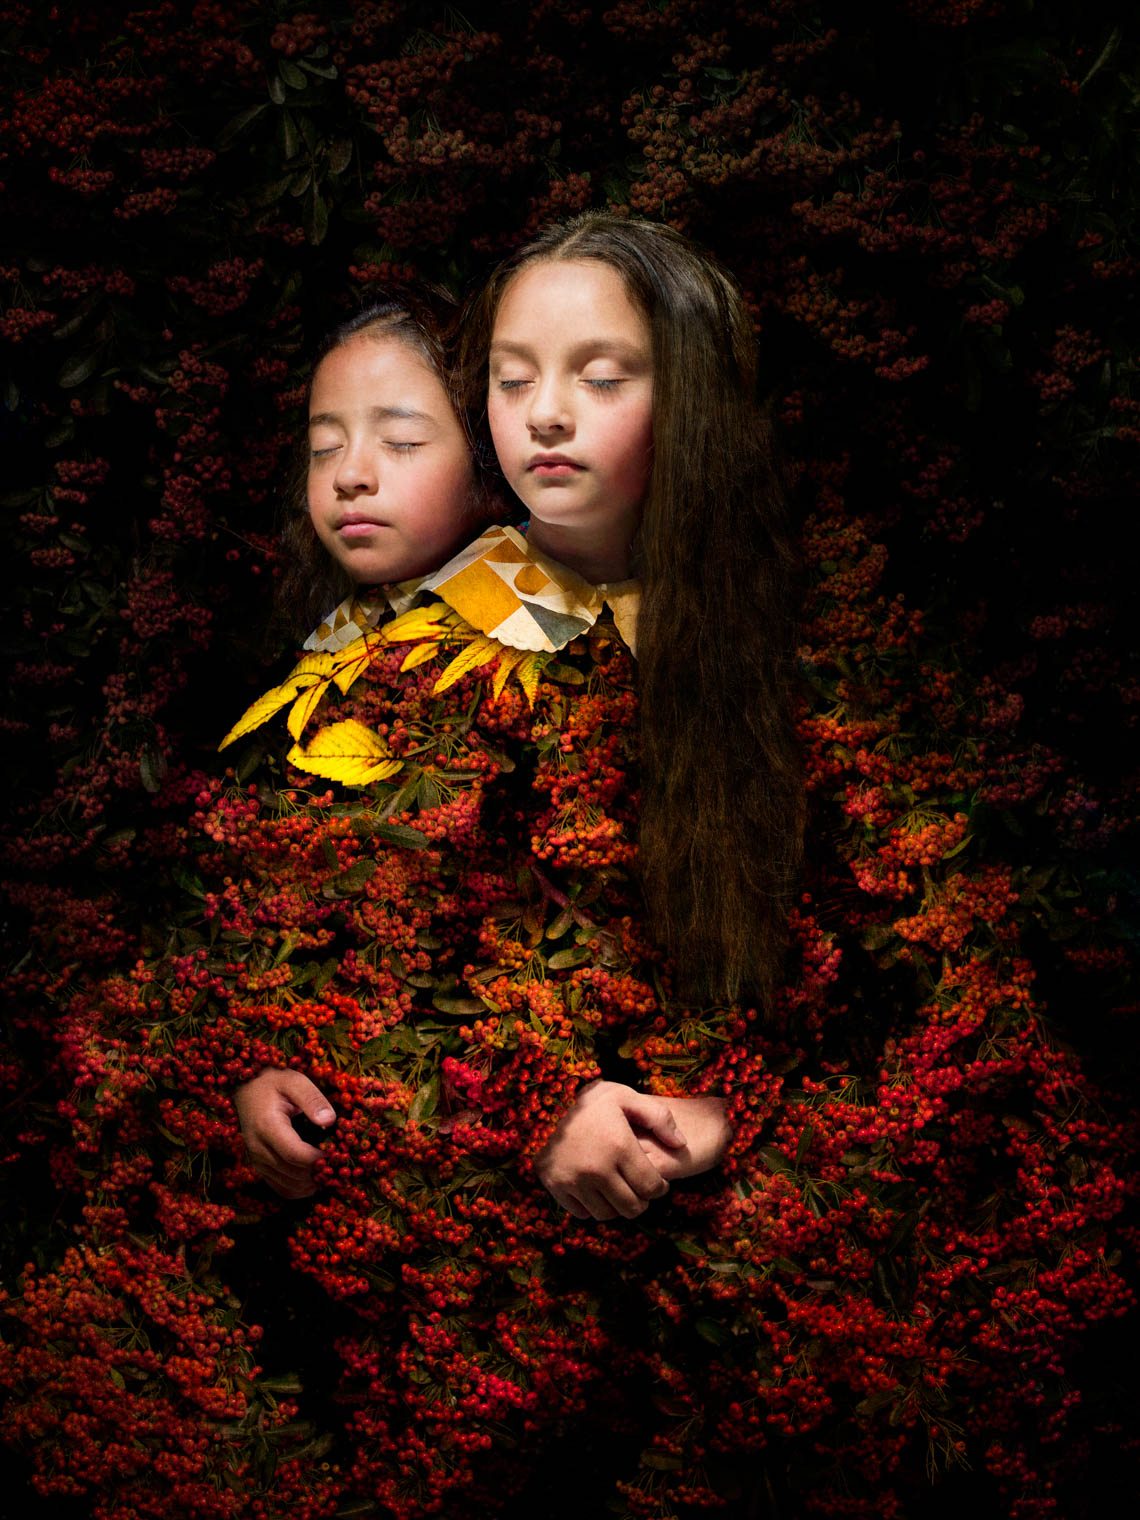 Girls with Red Berries, 2017